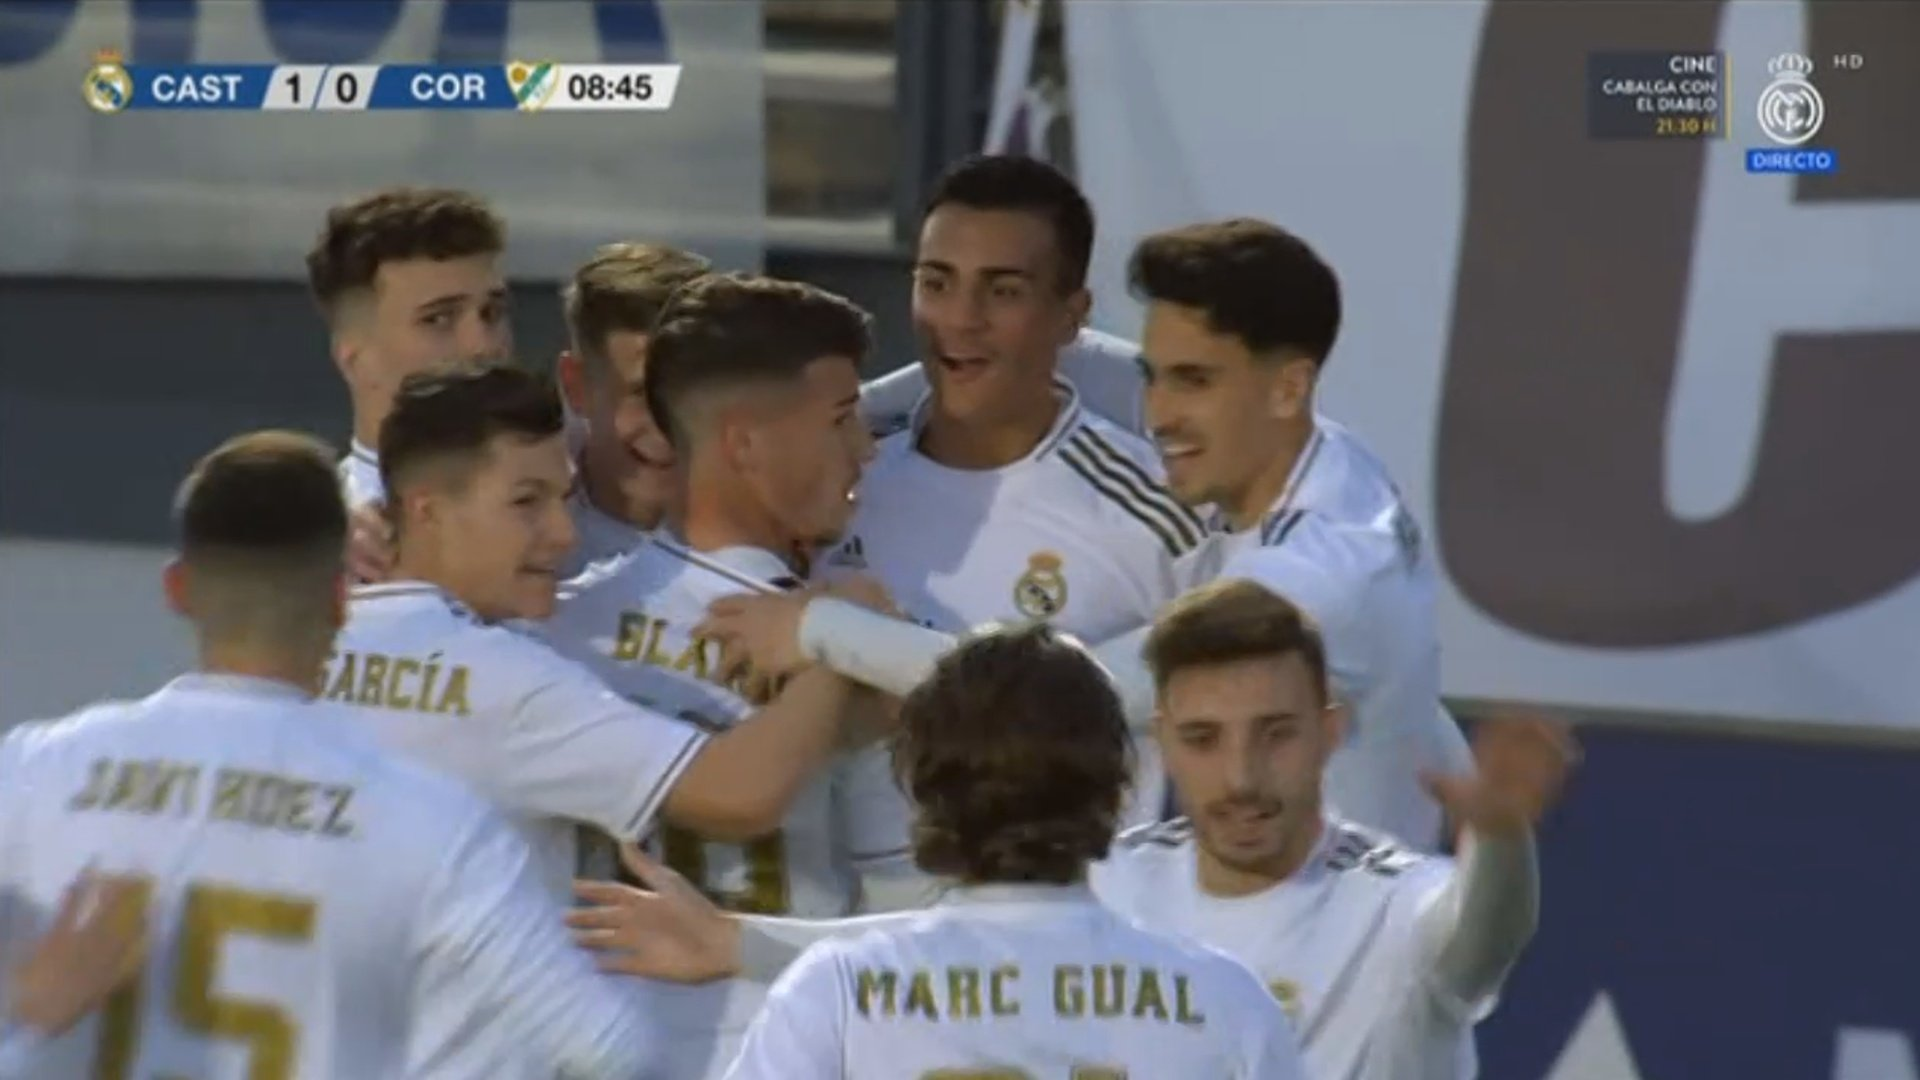 Reinier Jesus scores first goal for Real Madrid Castilla